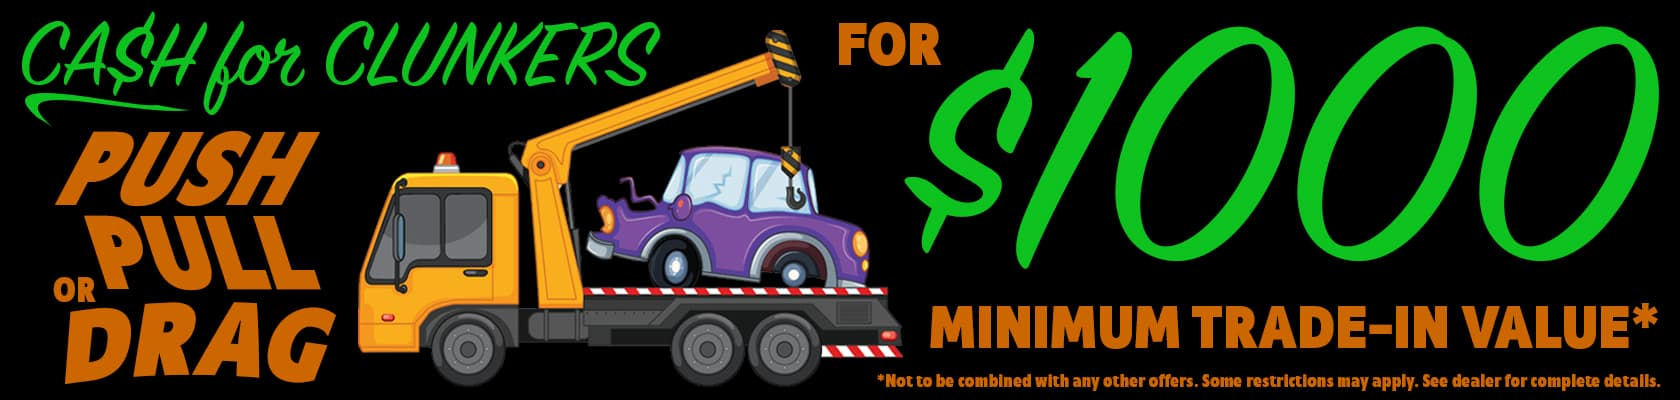 Cash for Clunkers $1000